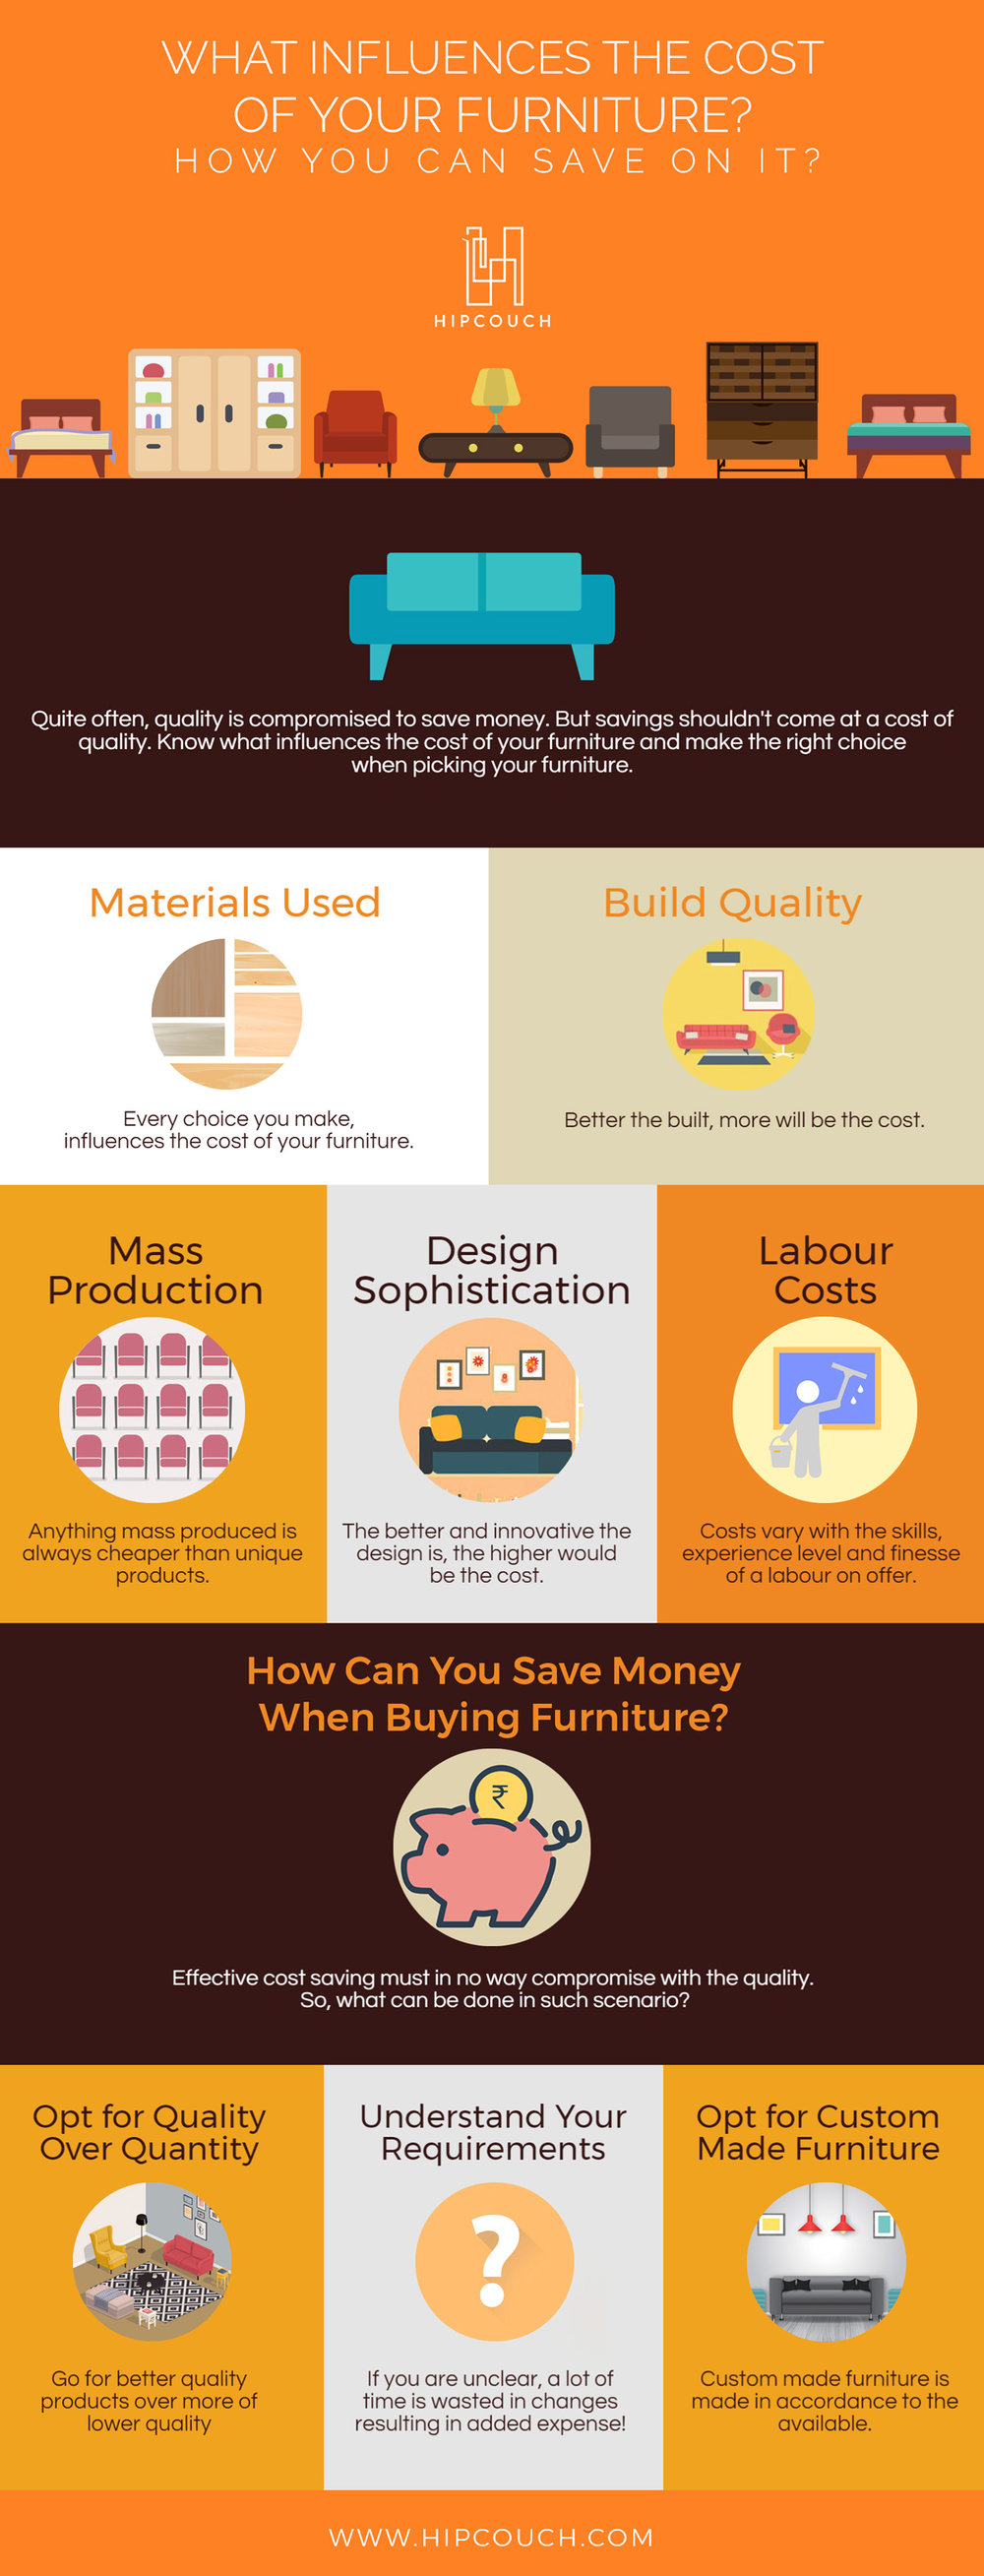 Visual Guide to help you know the factors influencing the cost of your furniture